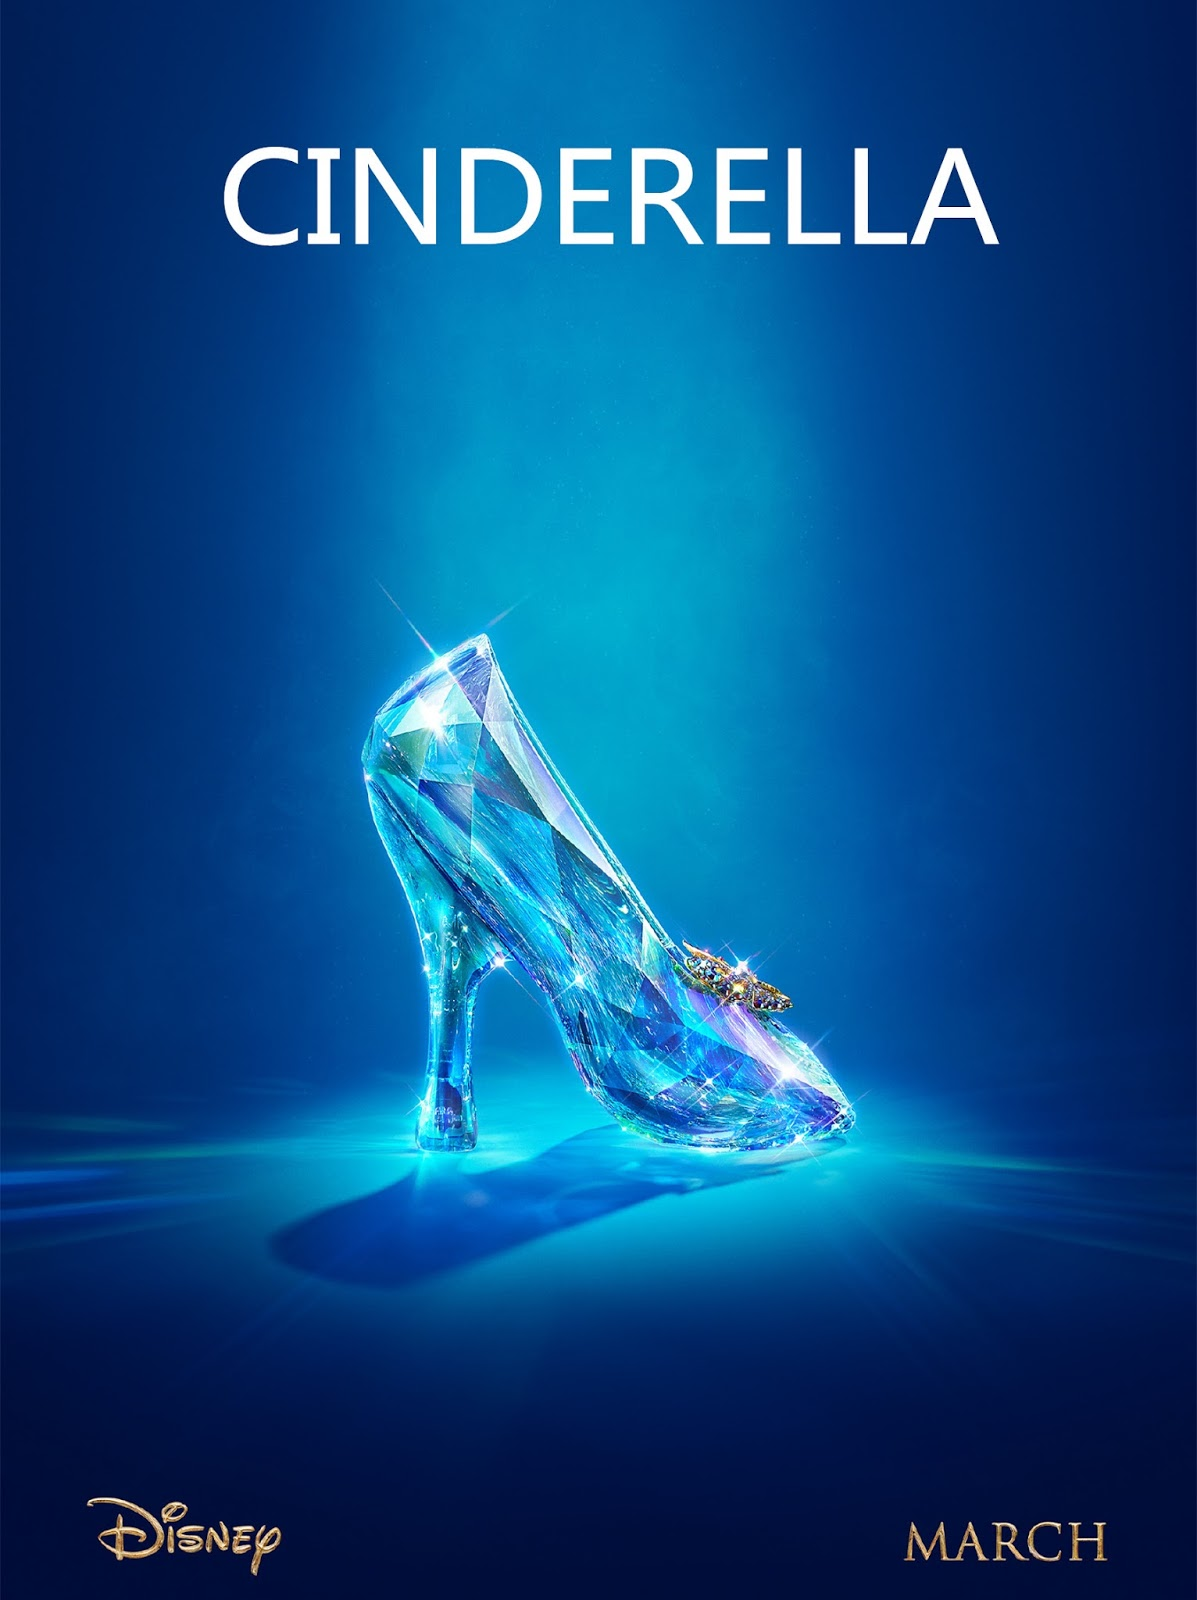 Cinderella Indonesia Movie Cinderella Movie Film Disney